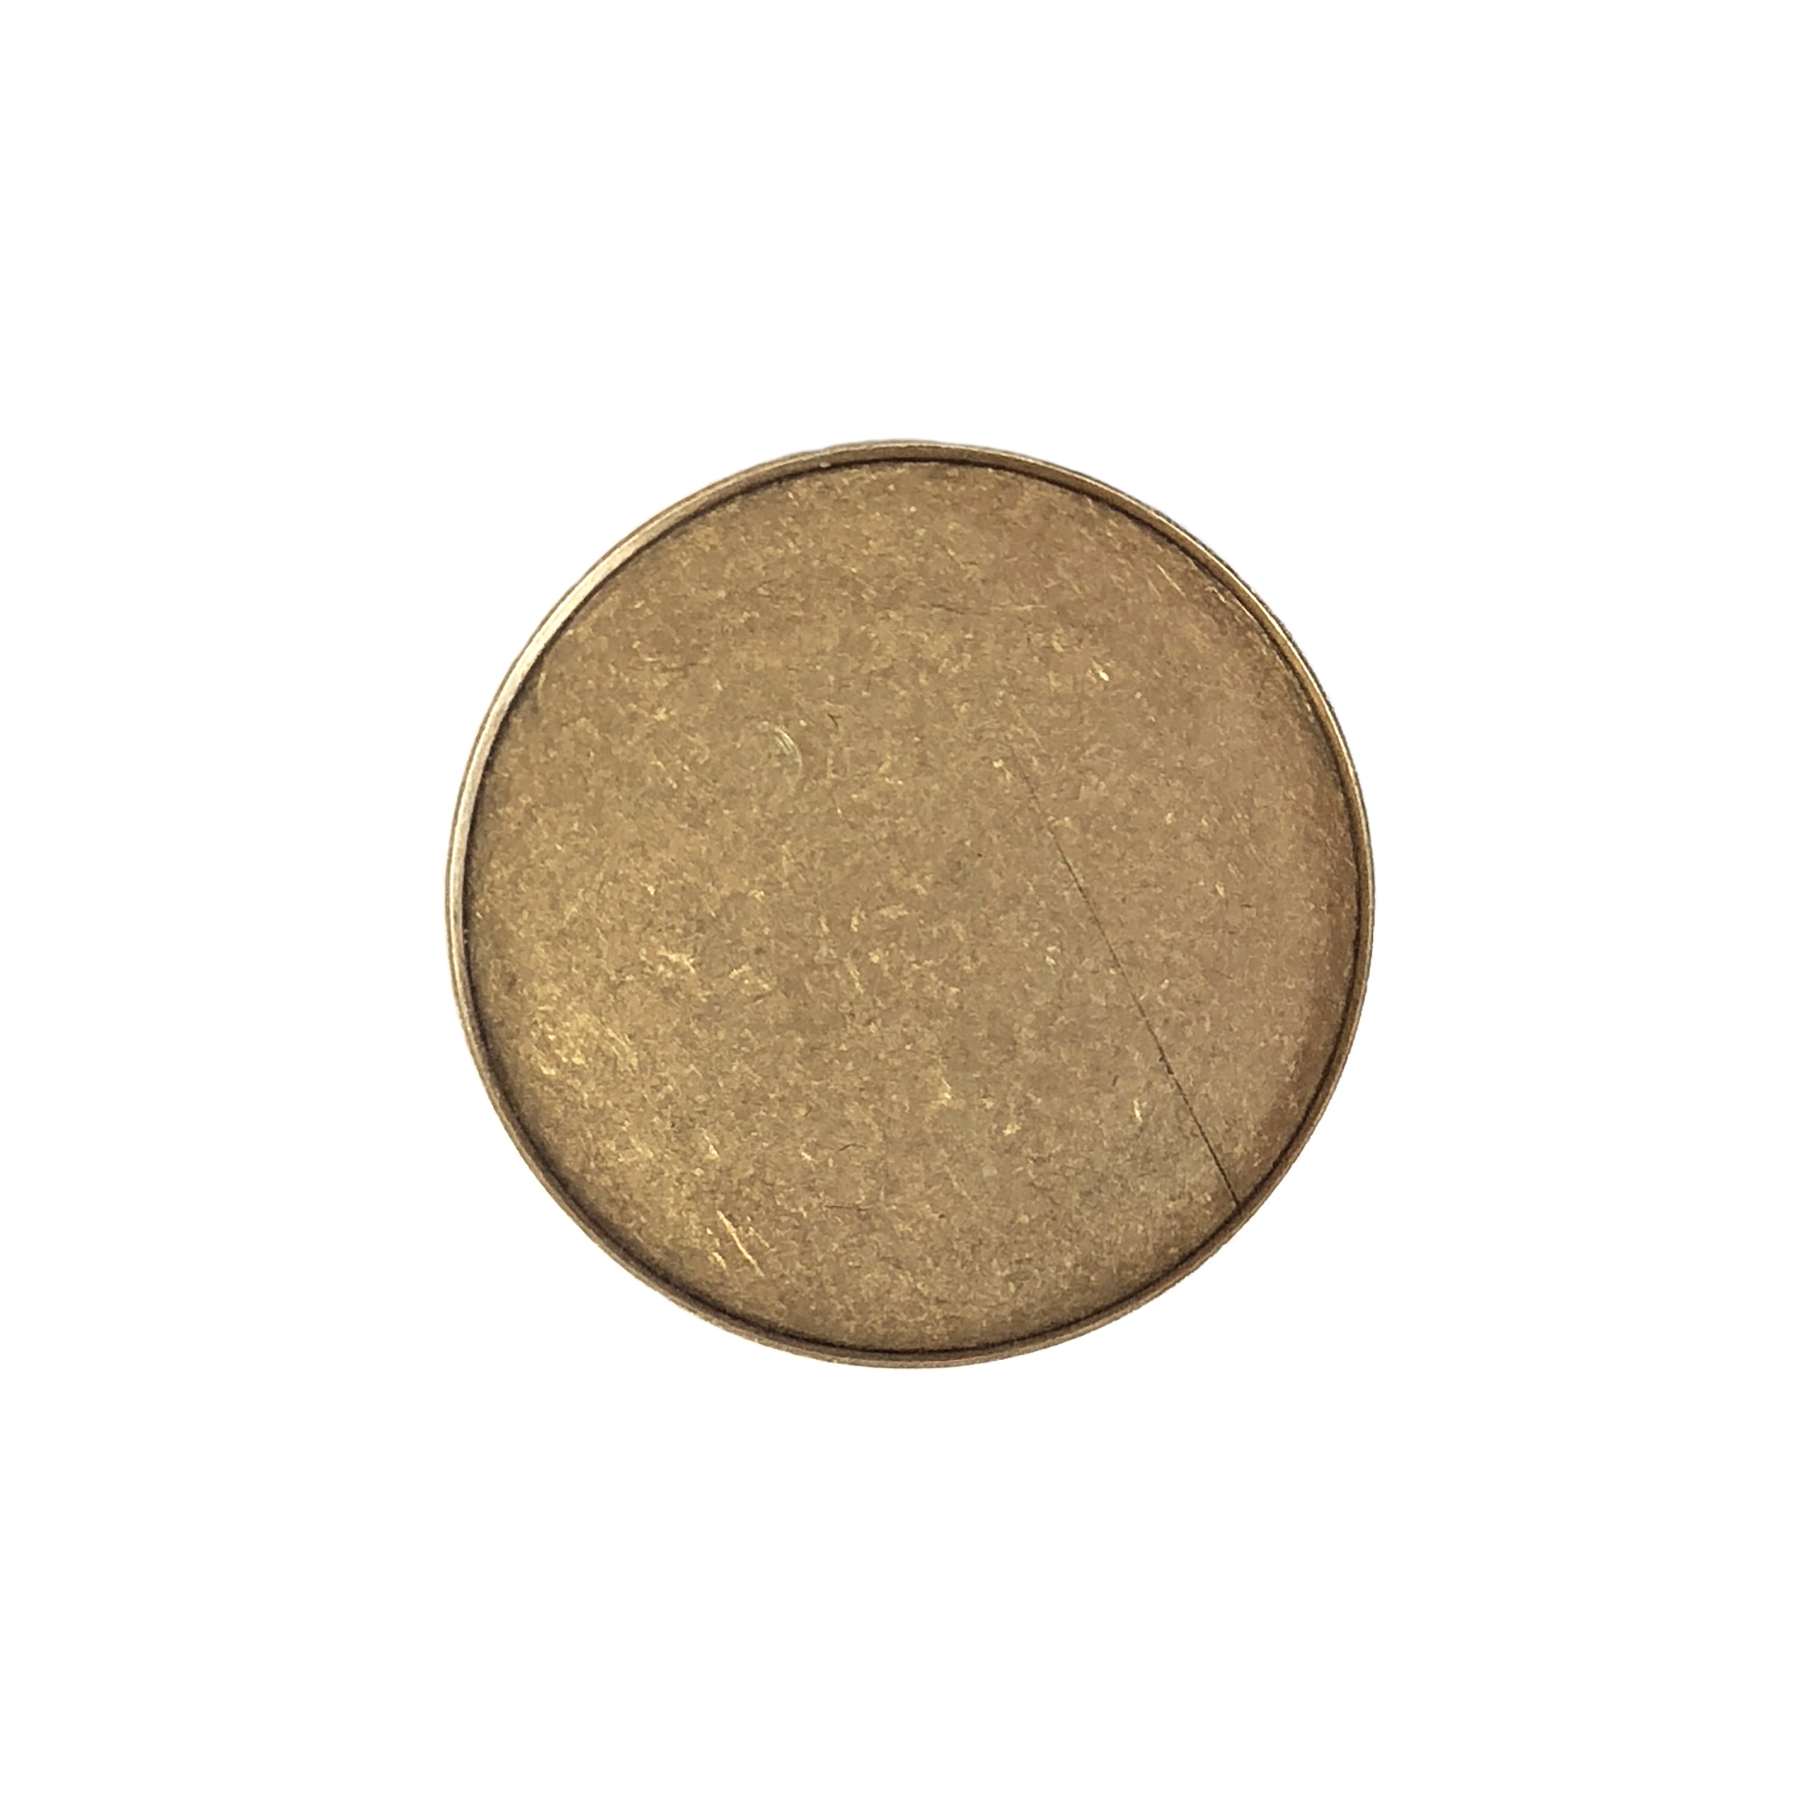 round bezel, brass ox, antique brass, shallow wall, US made, nickel free, jewelry making, 25mm, shallow wall (1mm), smooth back, jewelry supplies, vintage supplies, jewelry findings, B'sue Boutiques, brass bezel, bezel, brass stamping, 09405